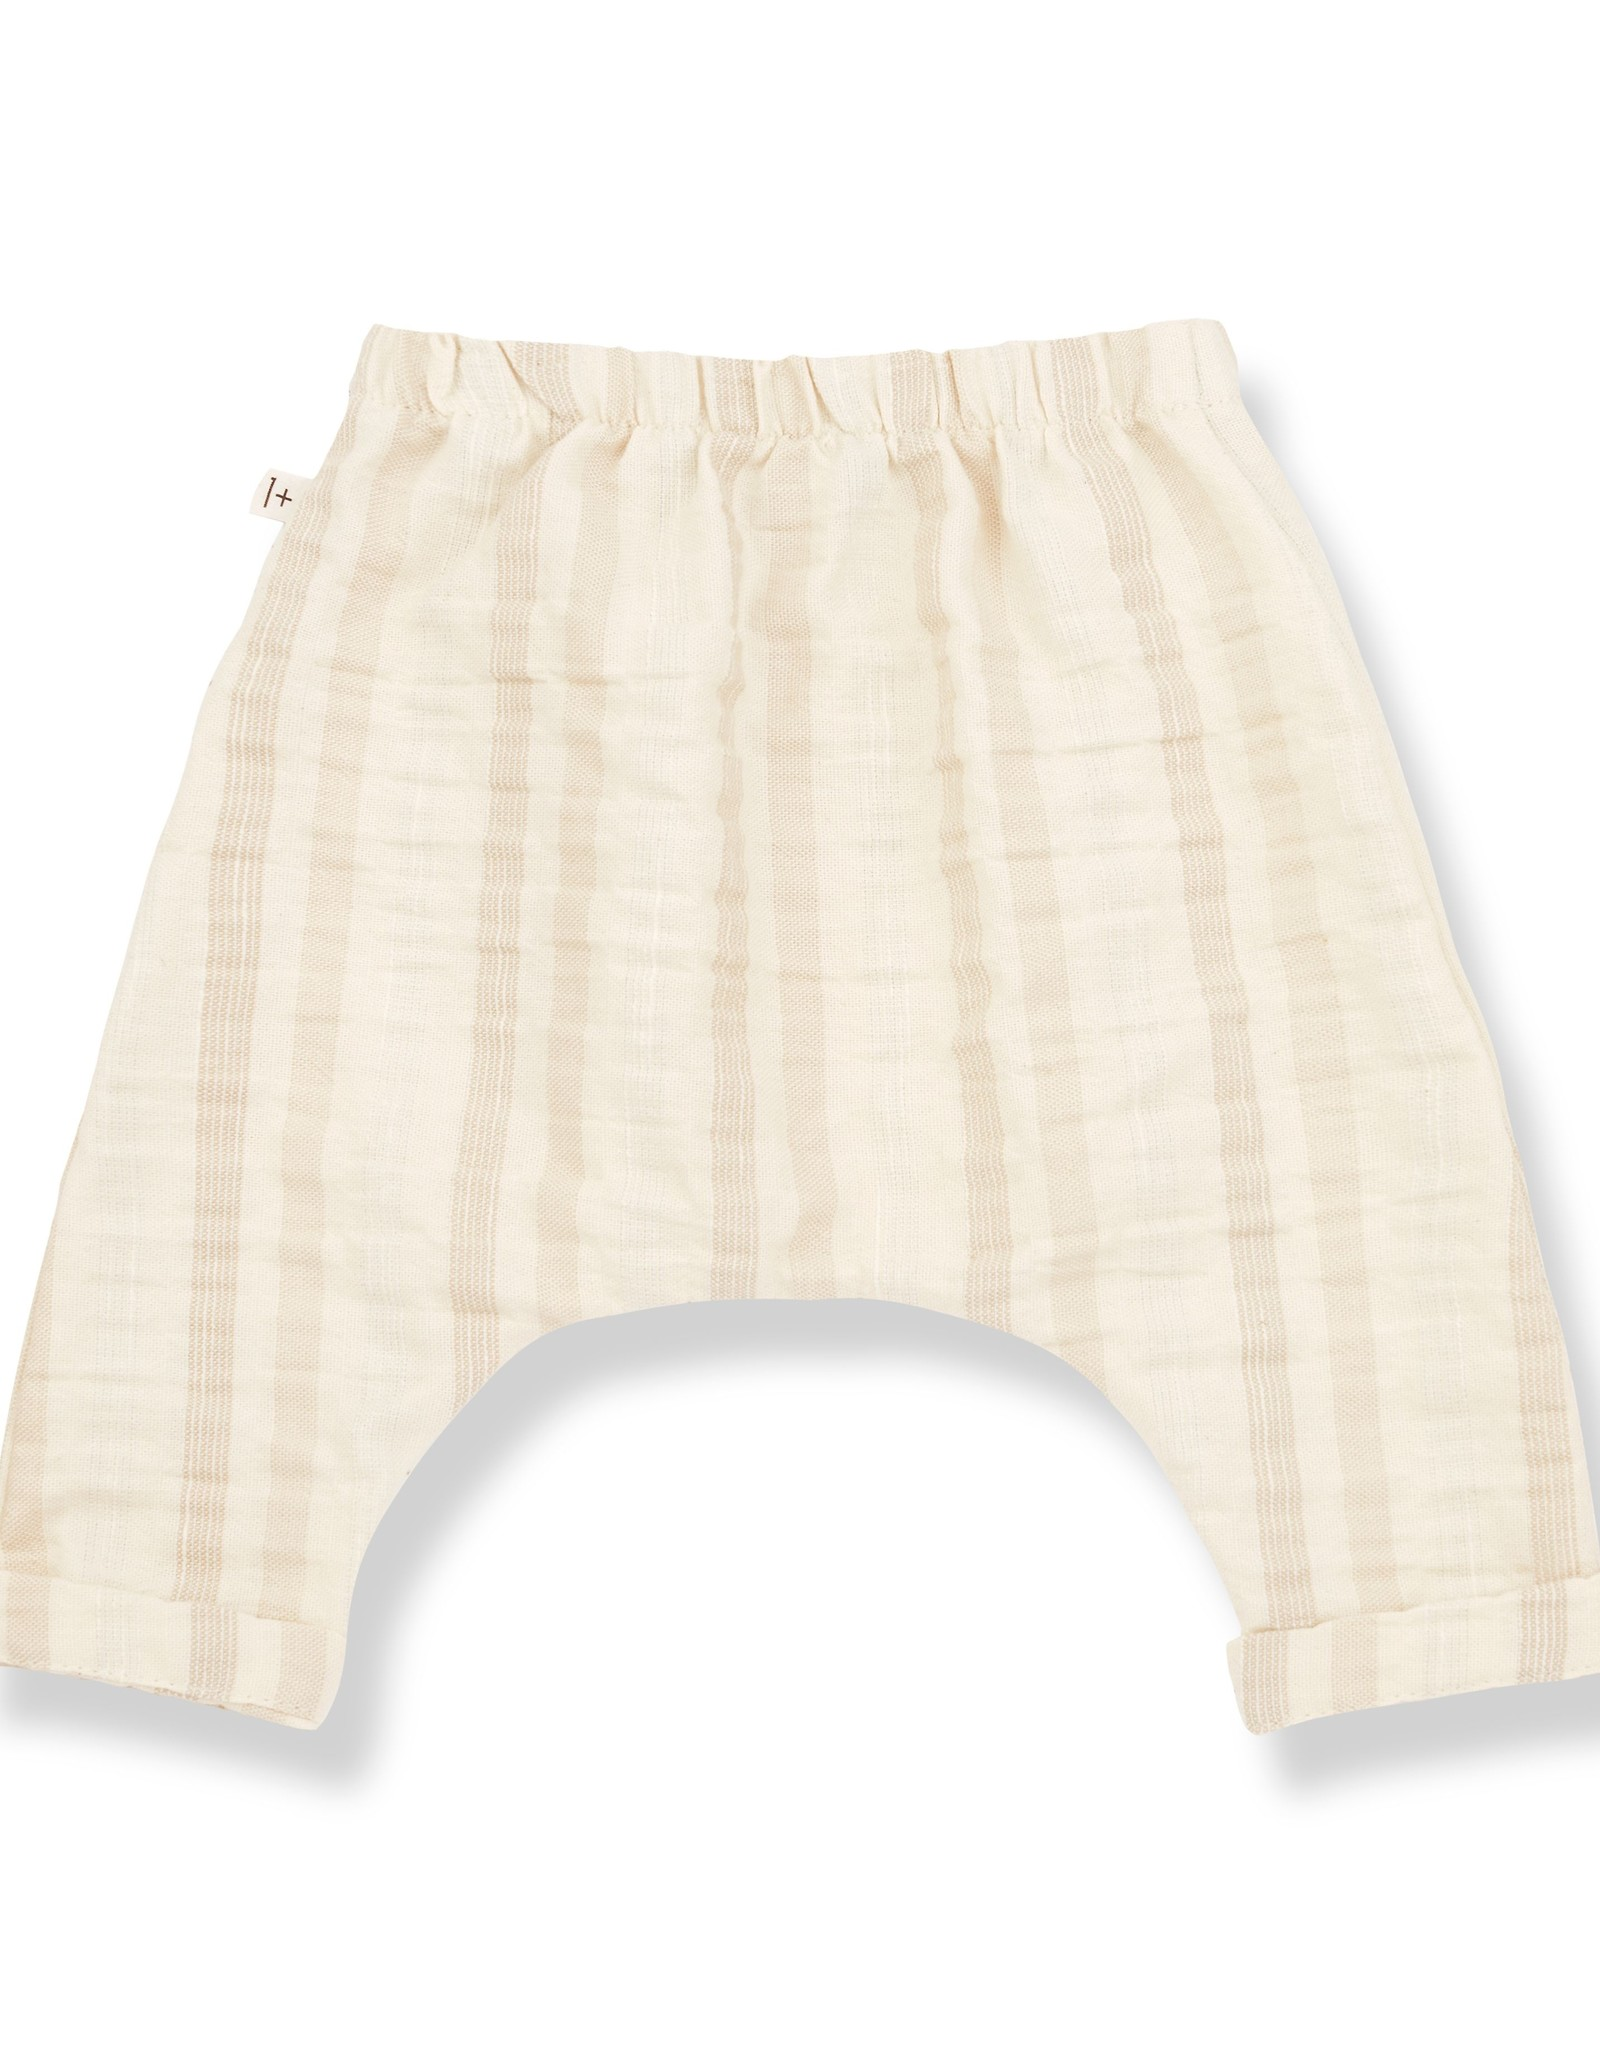 1+ In The Family 1+ in the Family PAU baggy broek natural